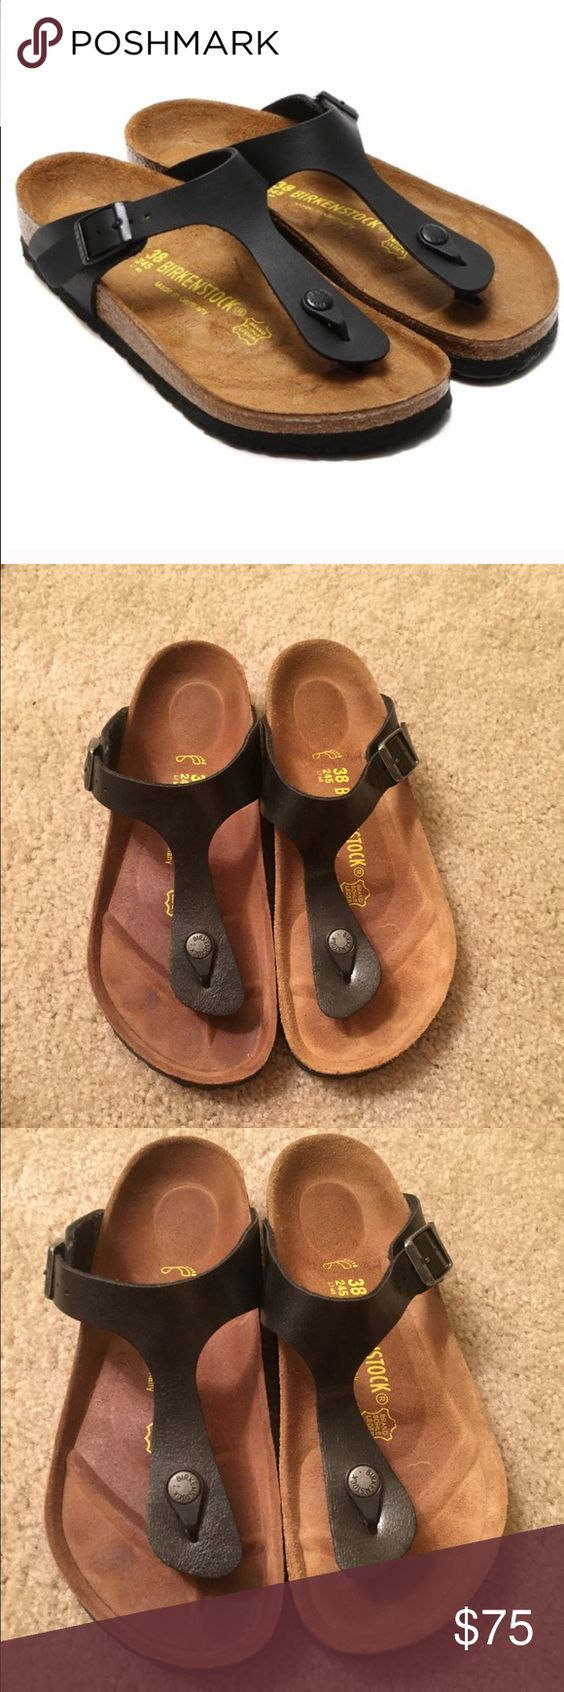 Birkenstock Gizeh size 38 The right shoe is a tad darker because it was a display shoe used to try on. Other than that, worn several times. Super comfortable! Birkenstock Shoes Sandals